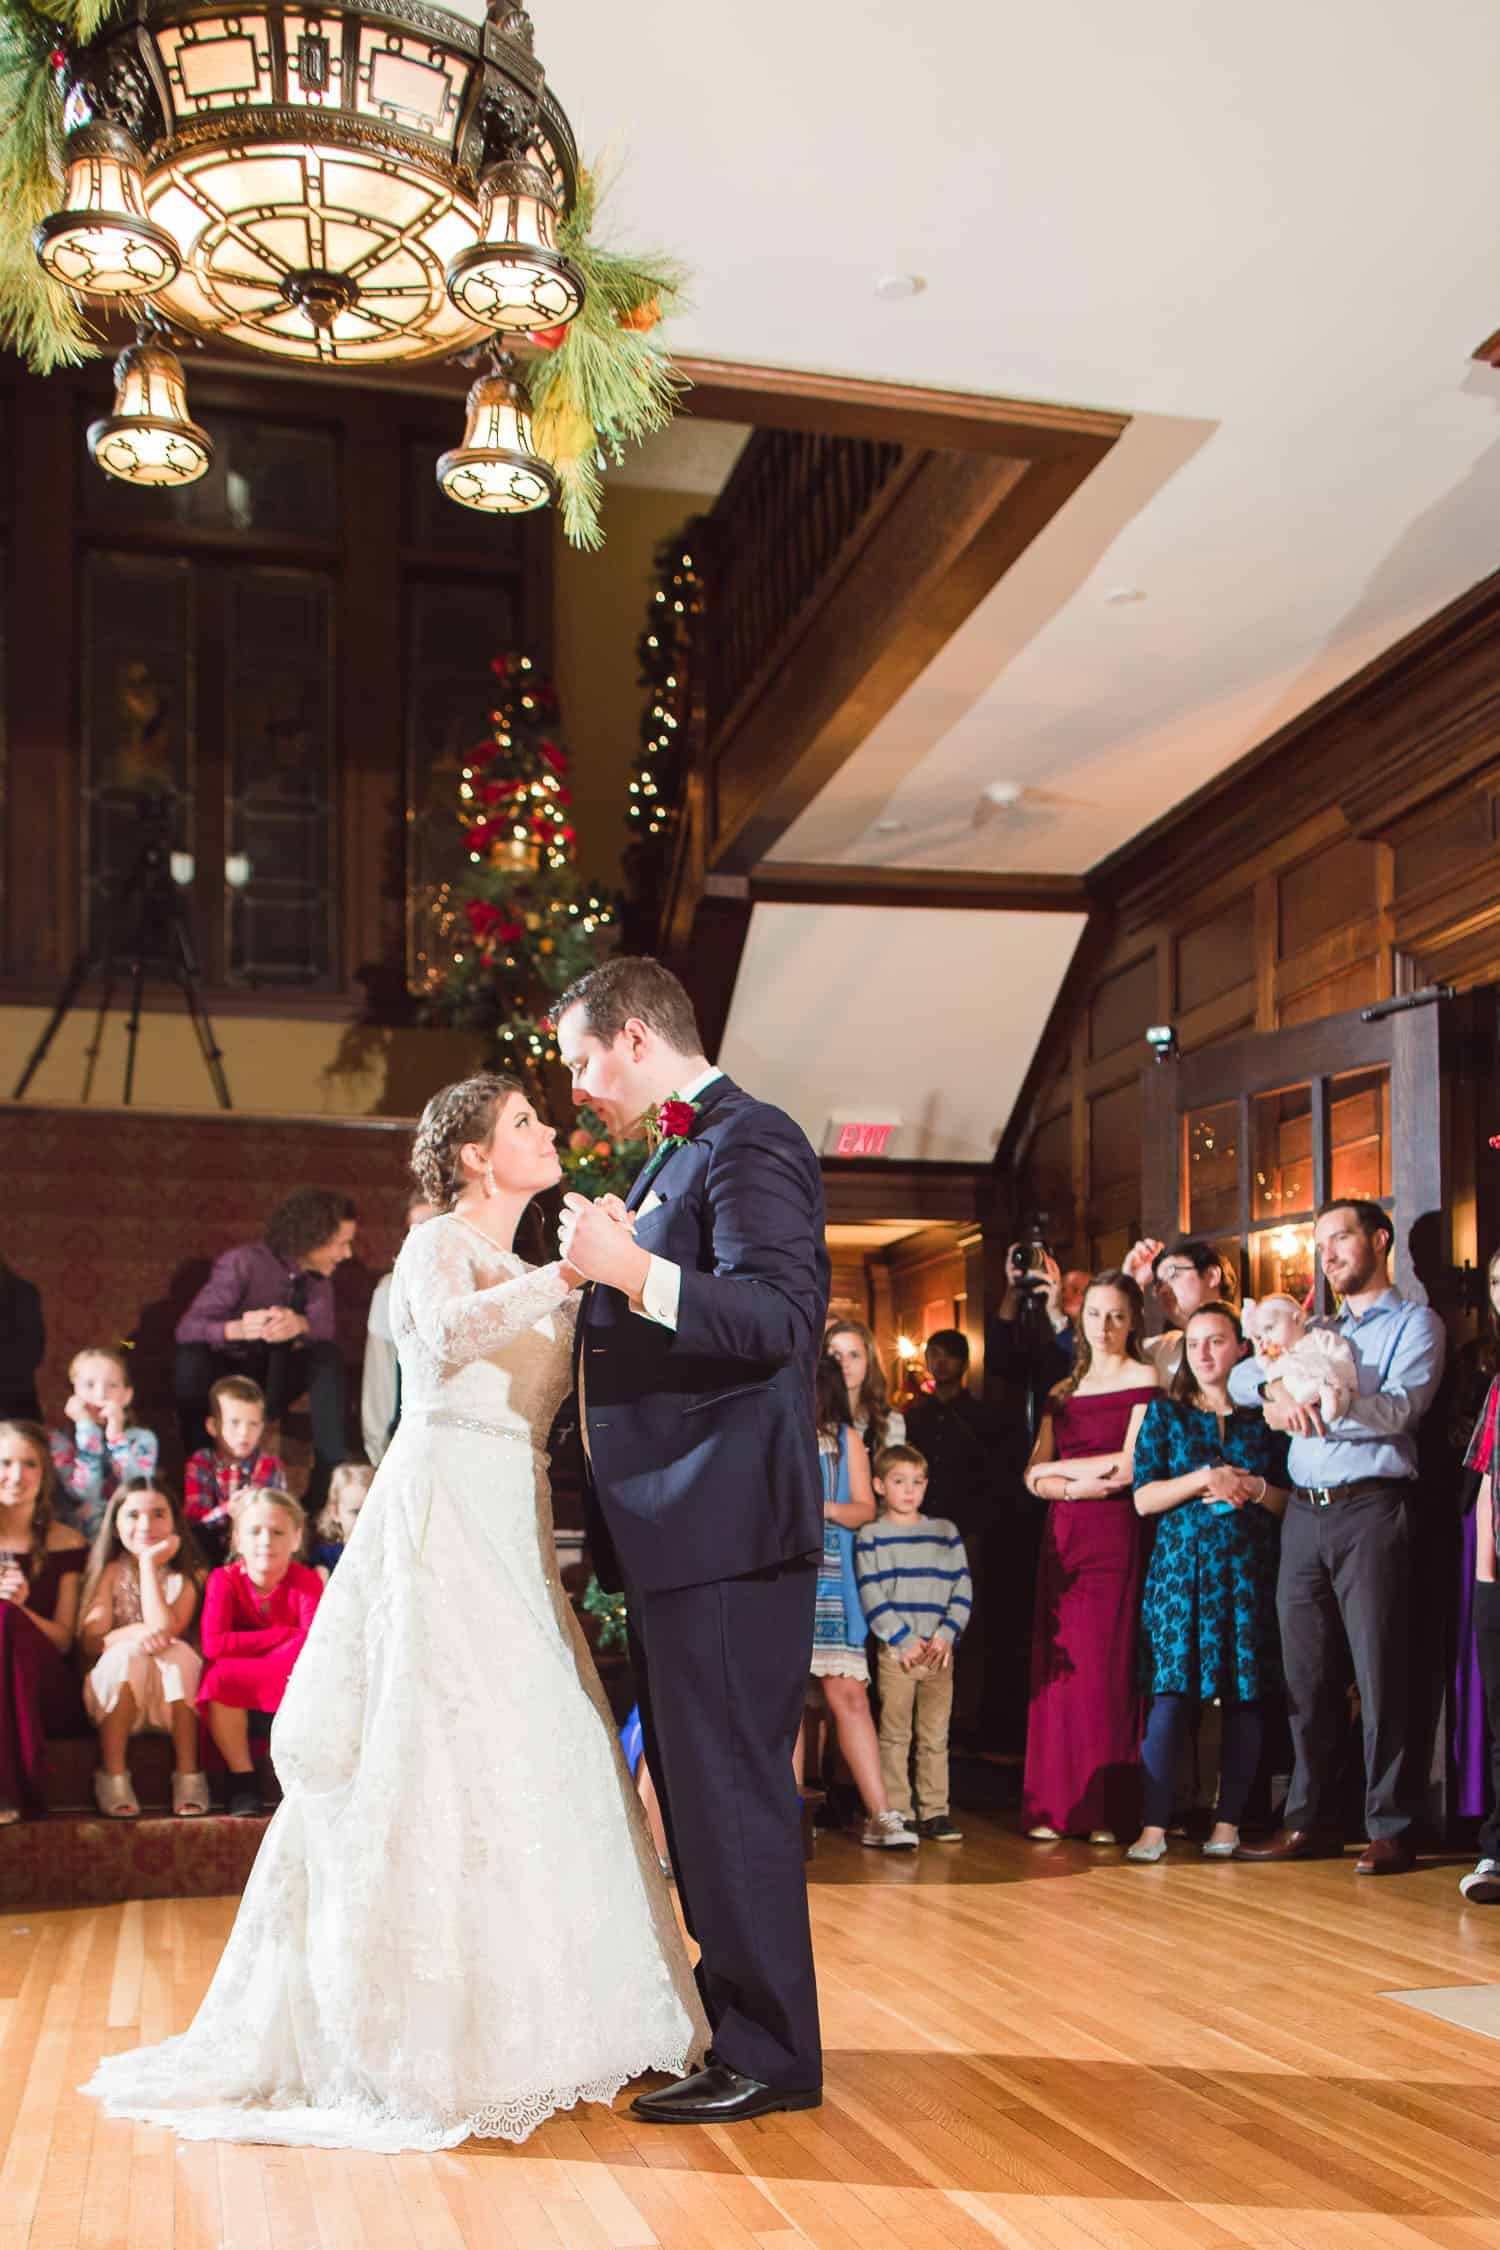 Choreographed first dance in Topeka